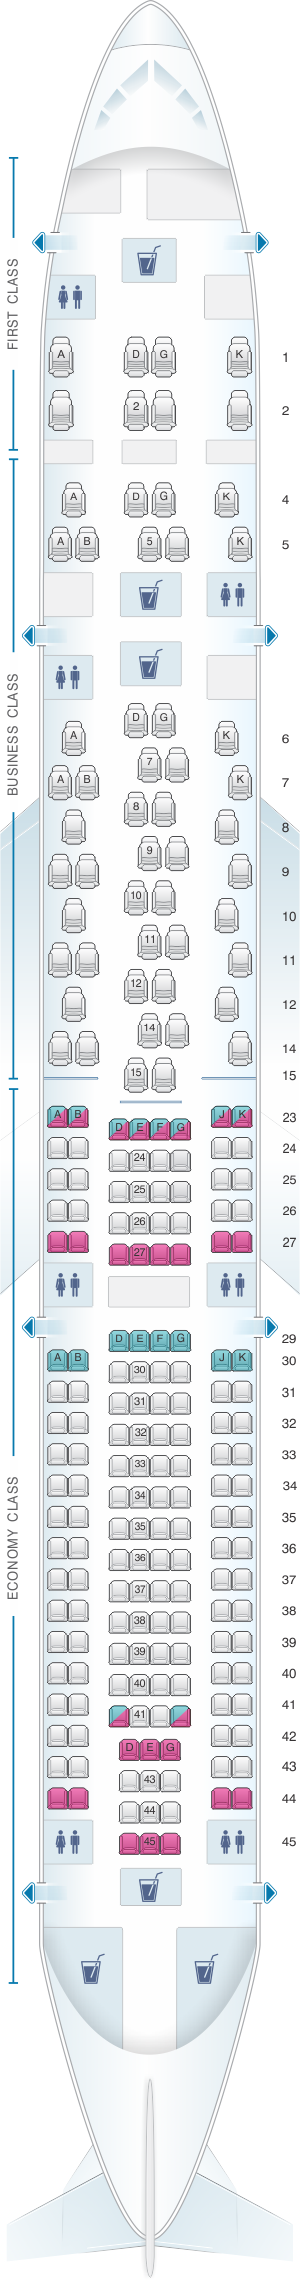 Seat map for SWISS Airbus A340 300